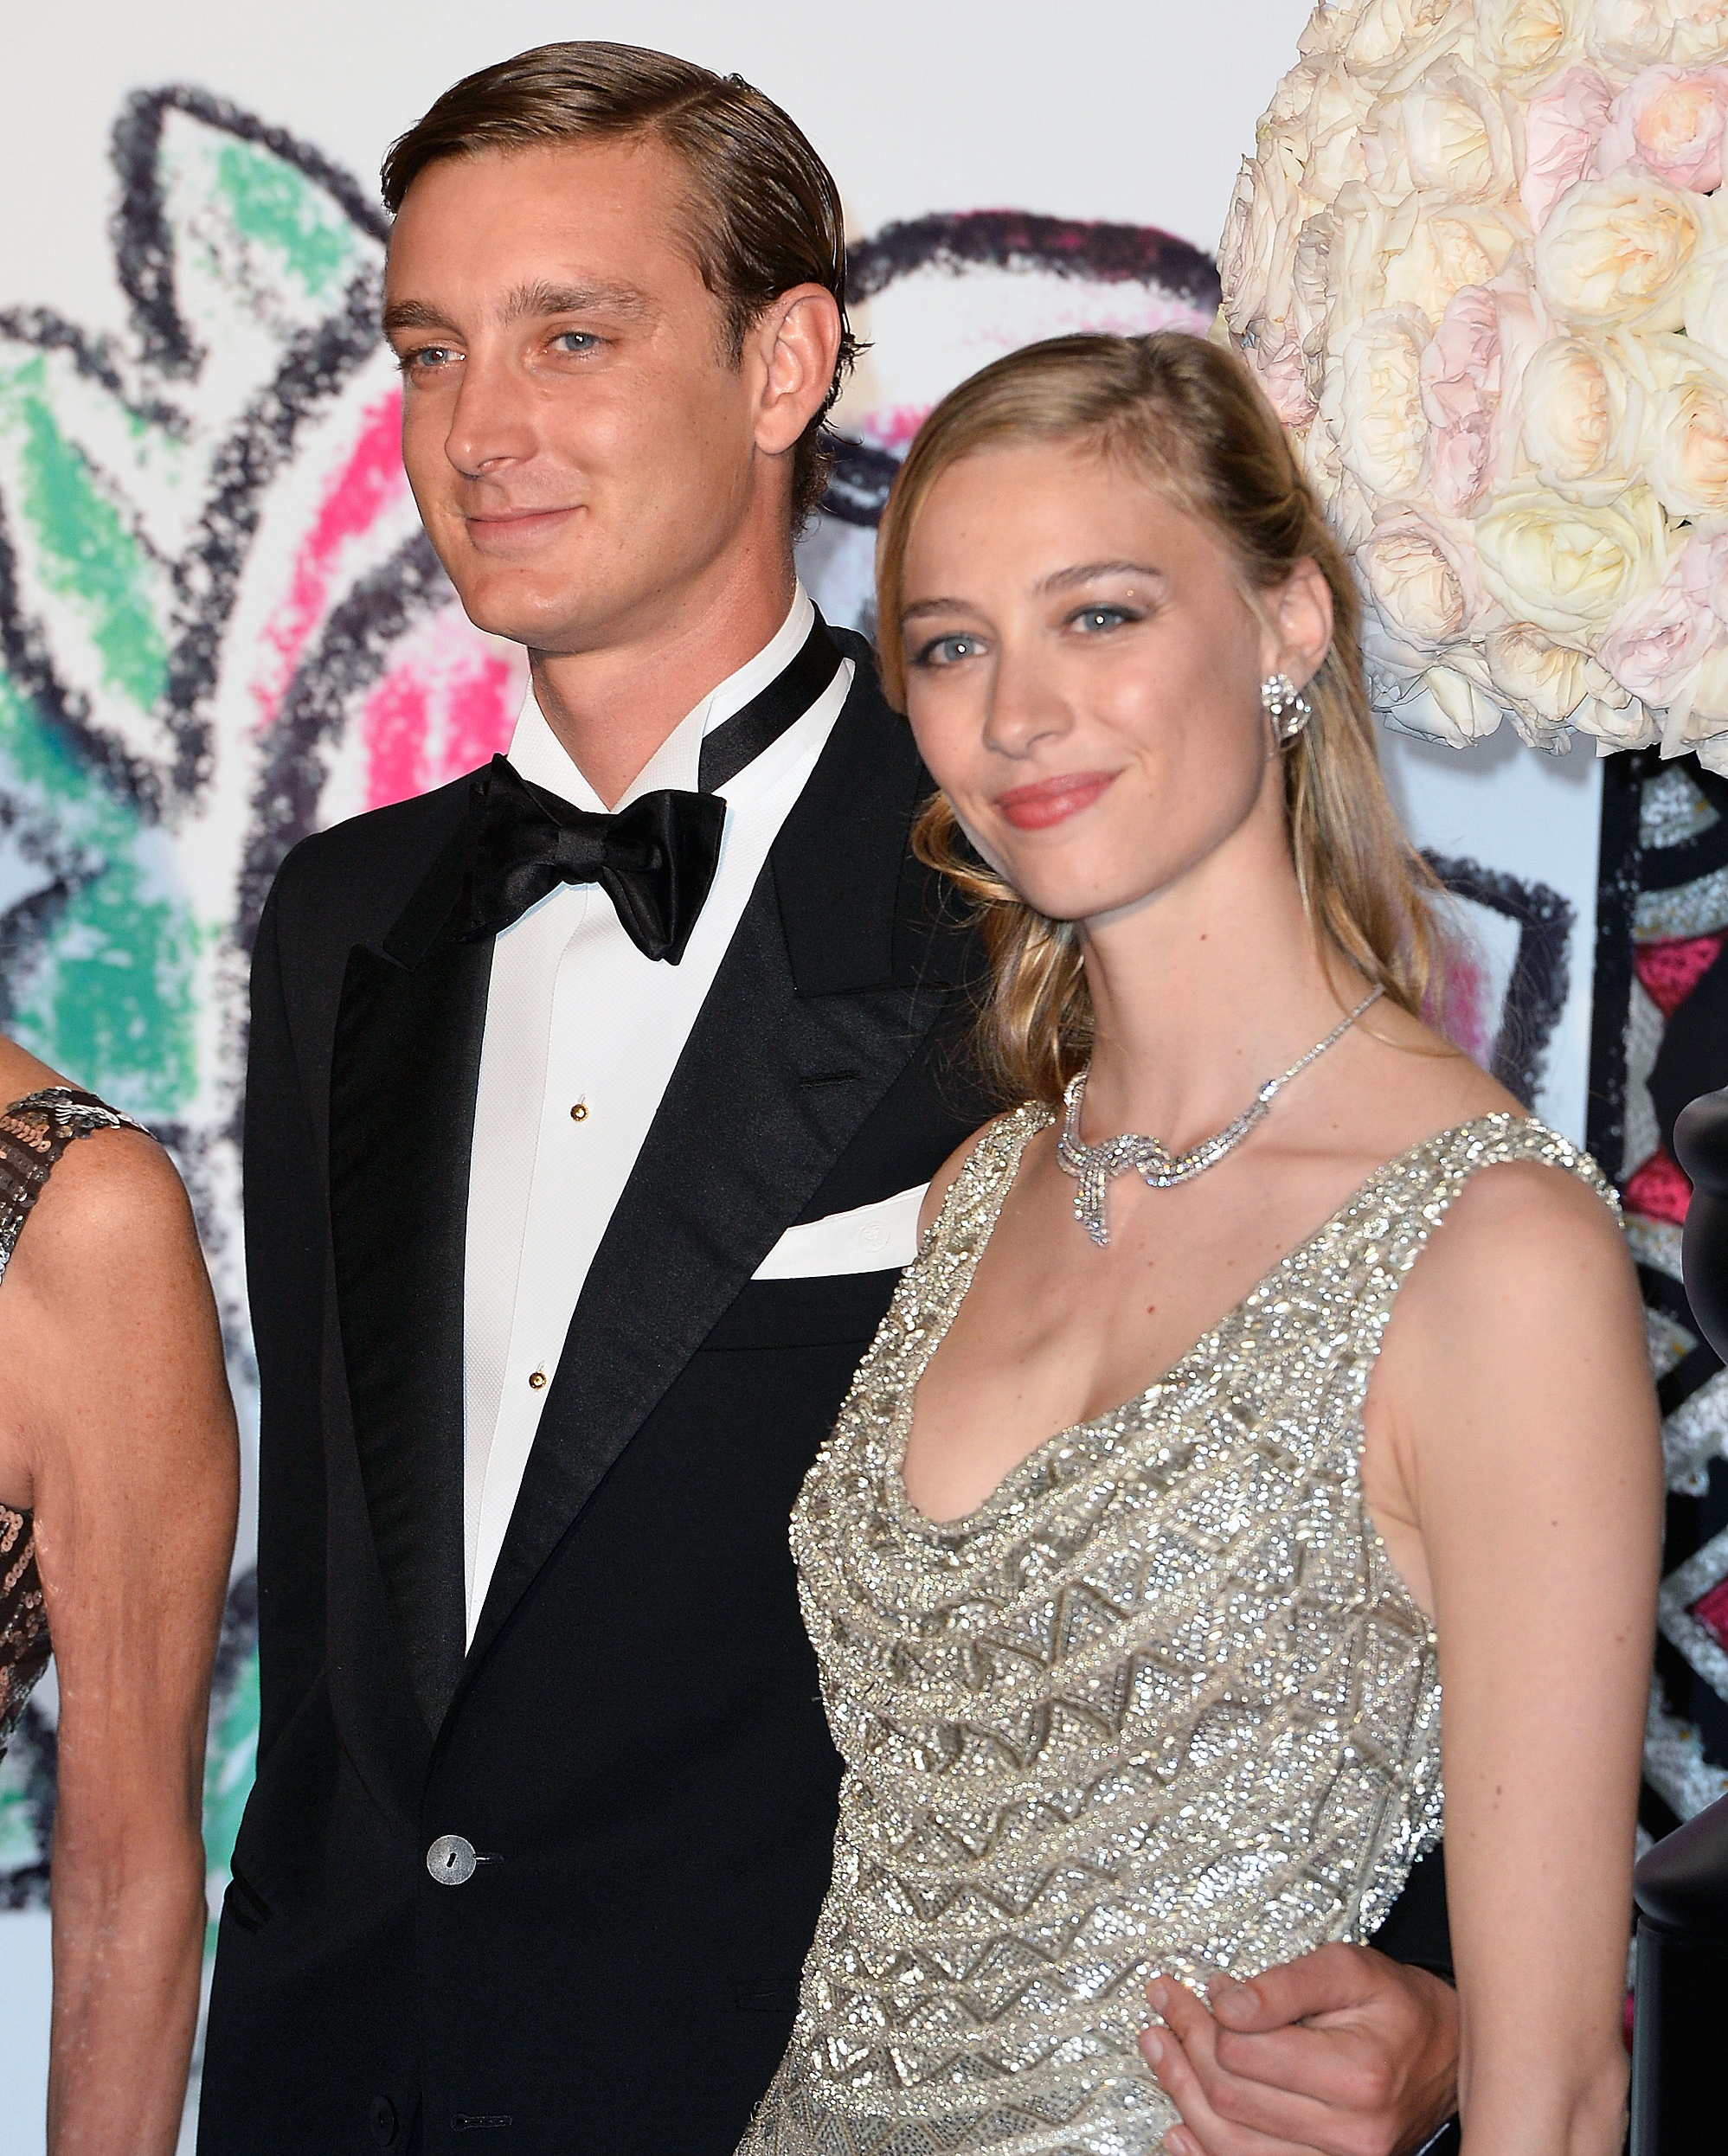 Marry Me, Martha! 14 Predictions for the Wedding of Pierre Casiraghi and Beatrice Borromeo